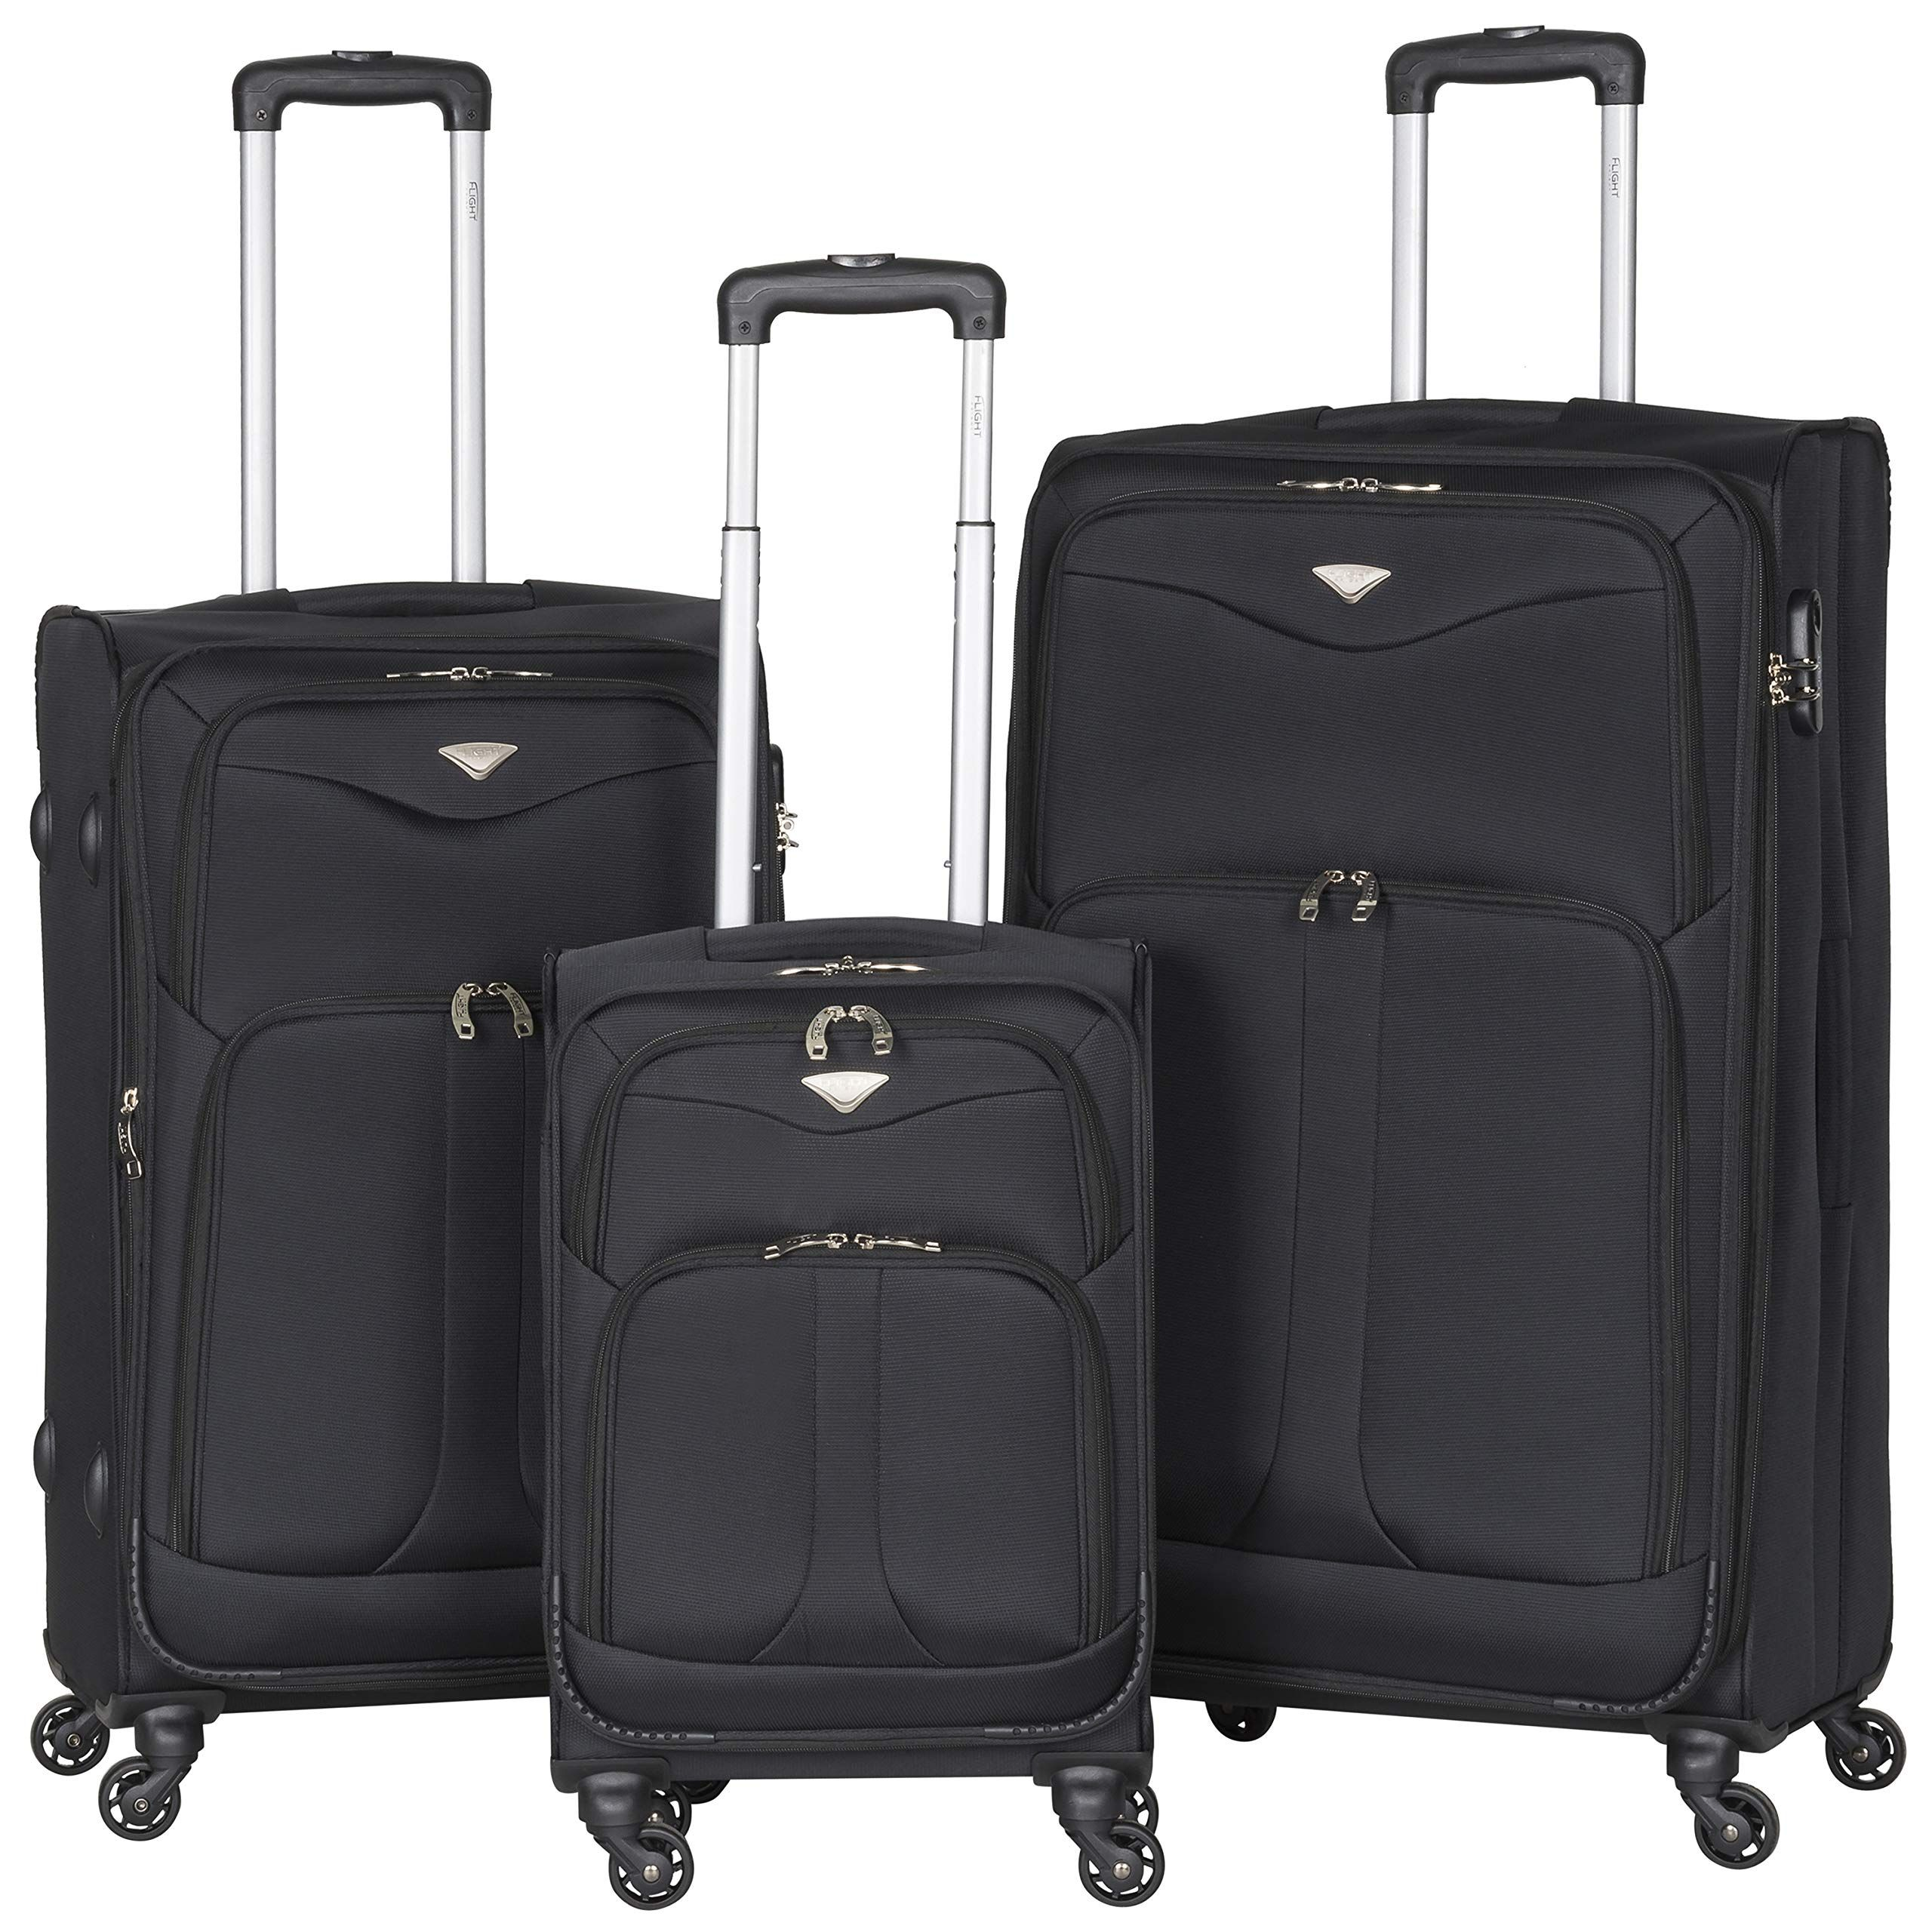 89e38a198aa Luggage Sets Suitcases Carry-Ons by Heys - Premium Designer Hardside … |  Hand Luggage / Suitcases / Luggage Sets / Travel Totes / Children's Luggage  UK in ...